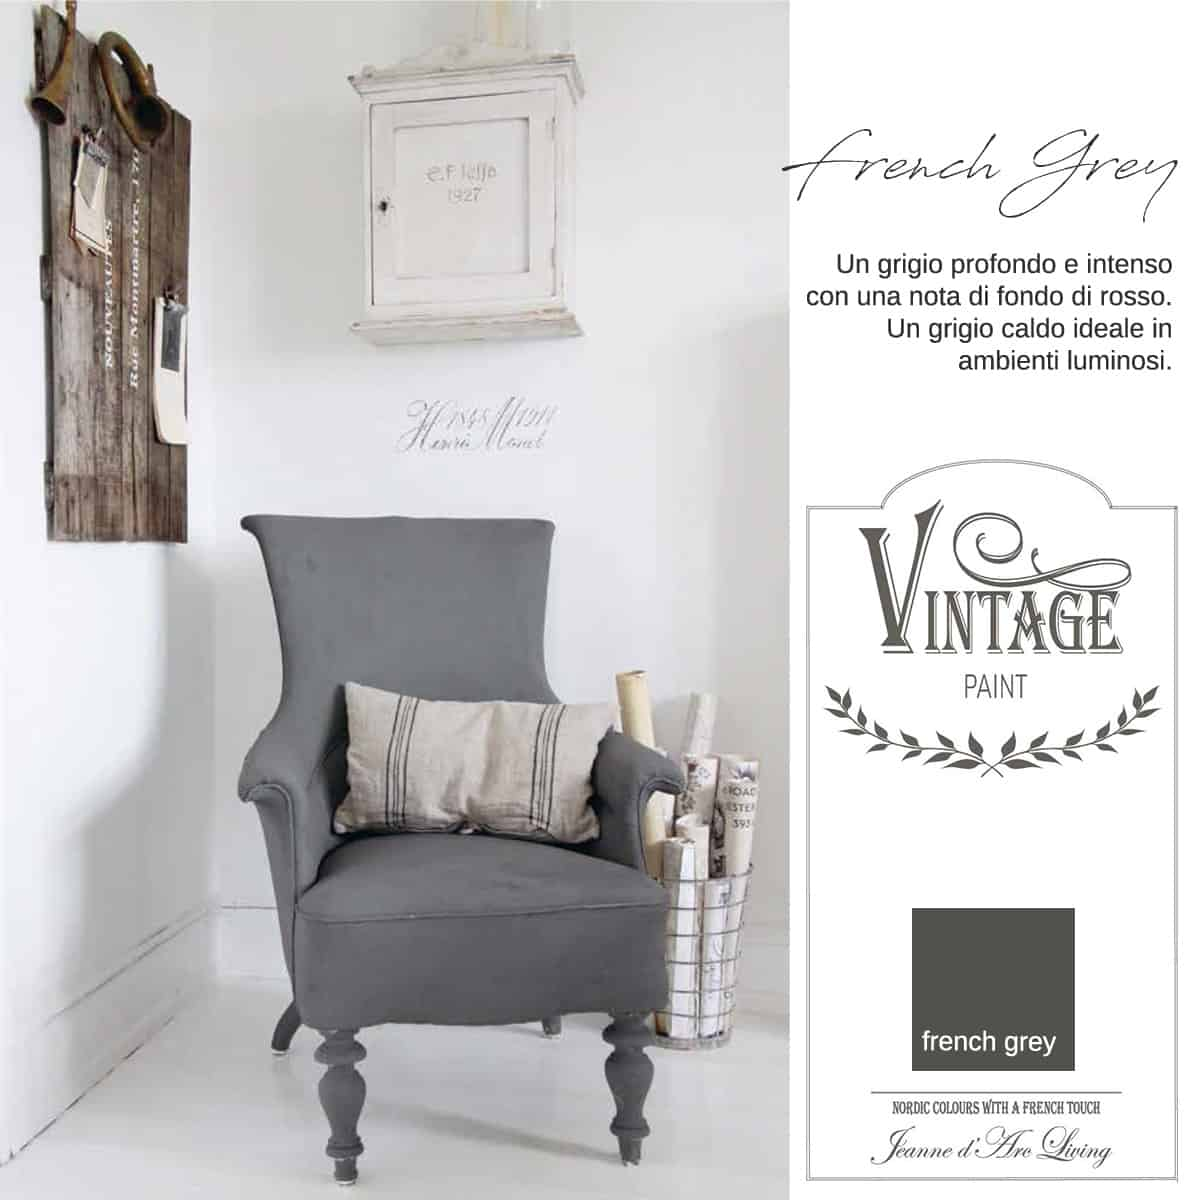 french grey grigio vintage chalk paint vernici shabby chic autentico look gesso